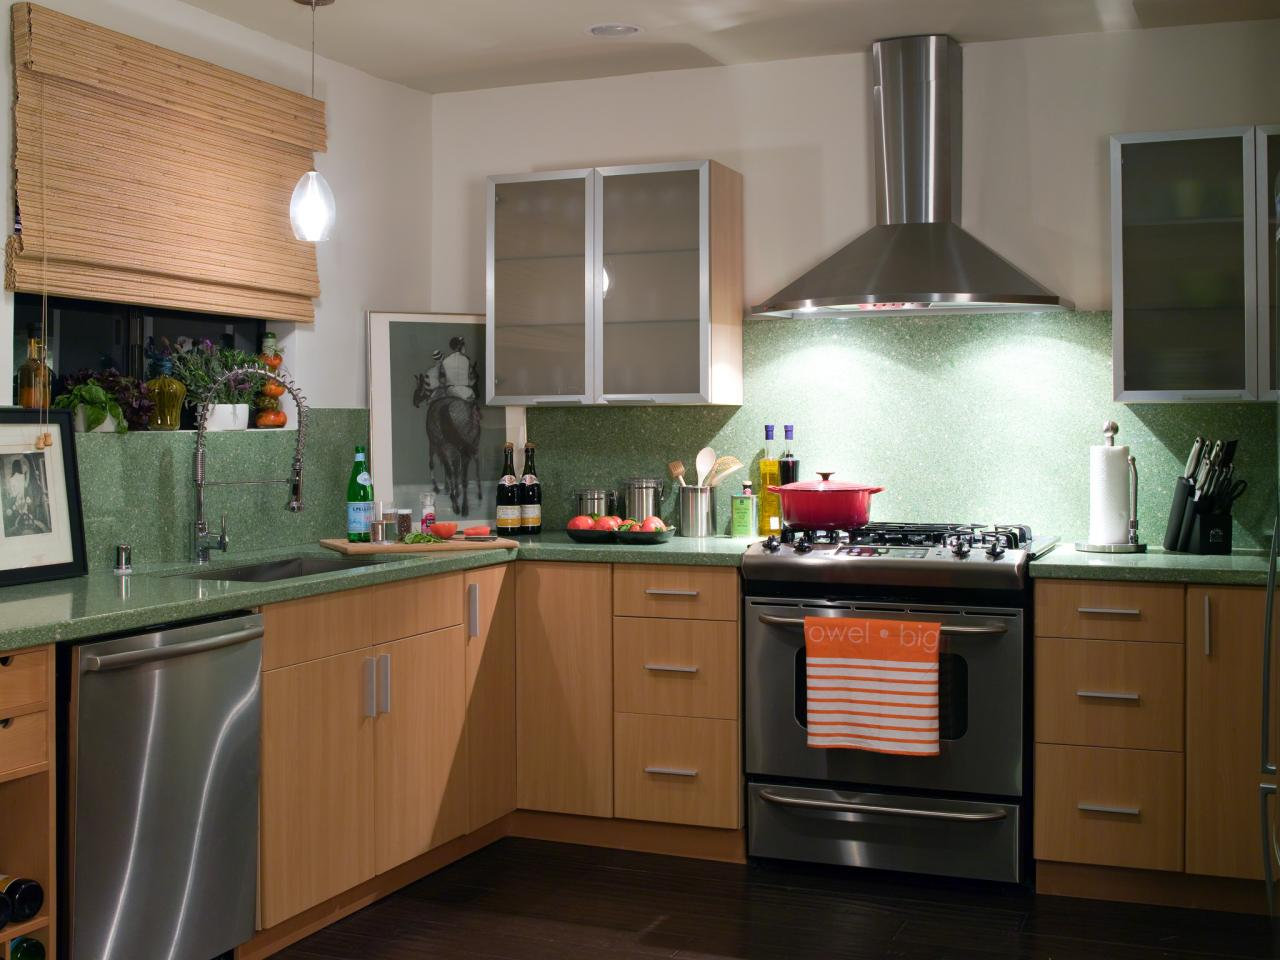 Eco countertops pictures ideas tips from hgtv hgtv for Eco friendly kitchen products